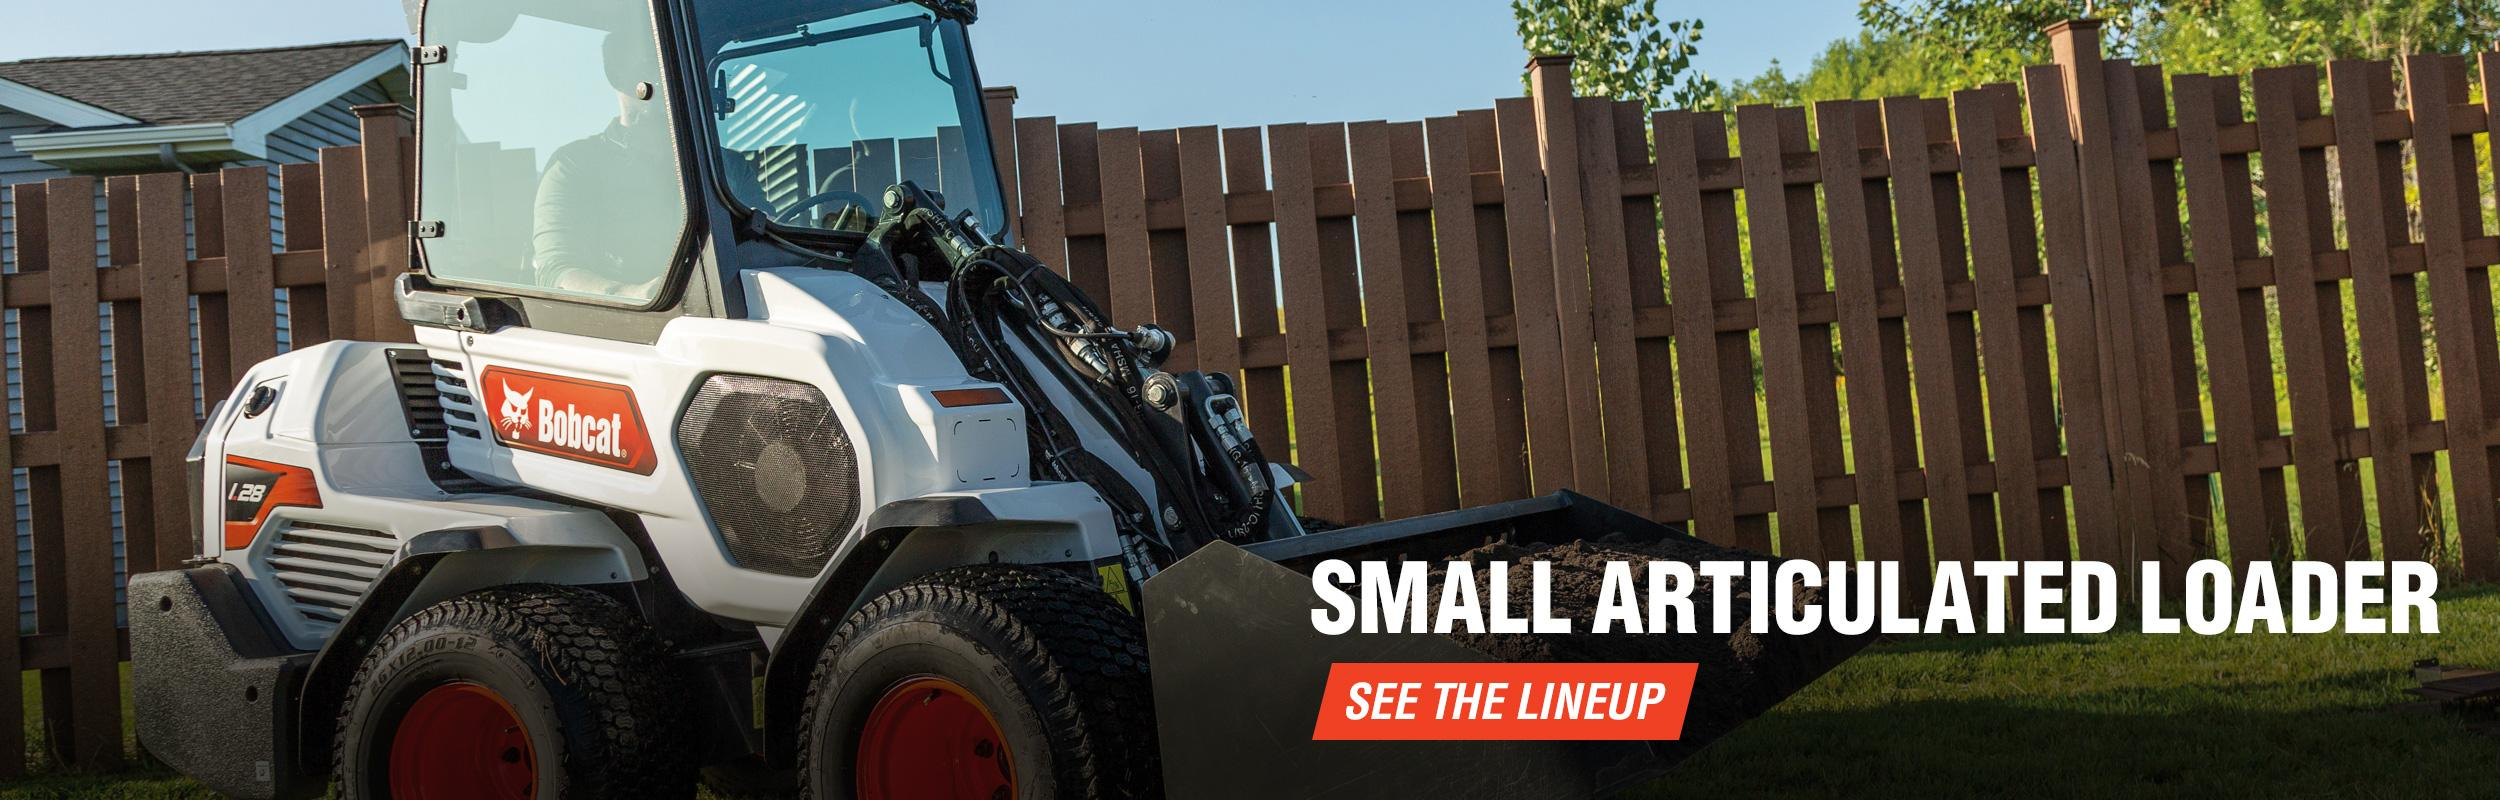 Bobcat Small Articulated Loader Parked In Yard.